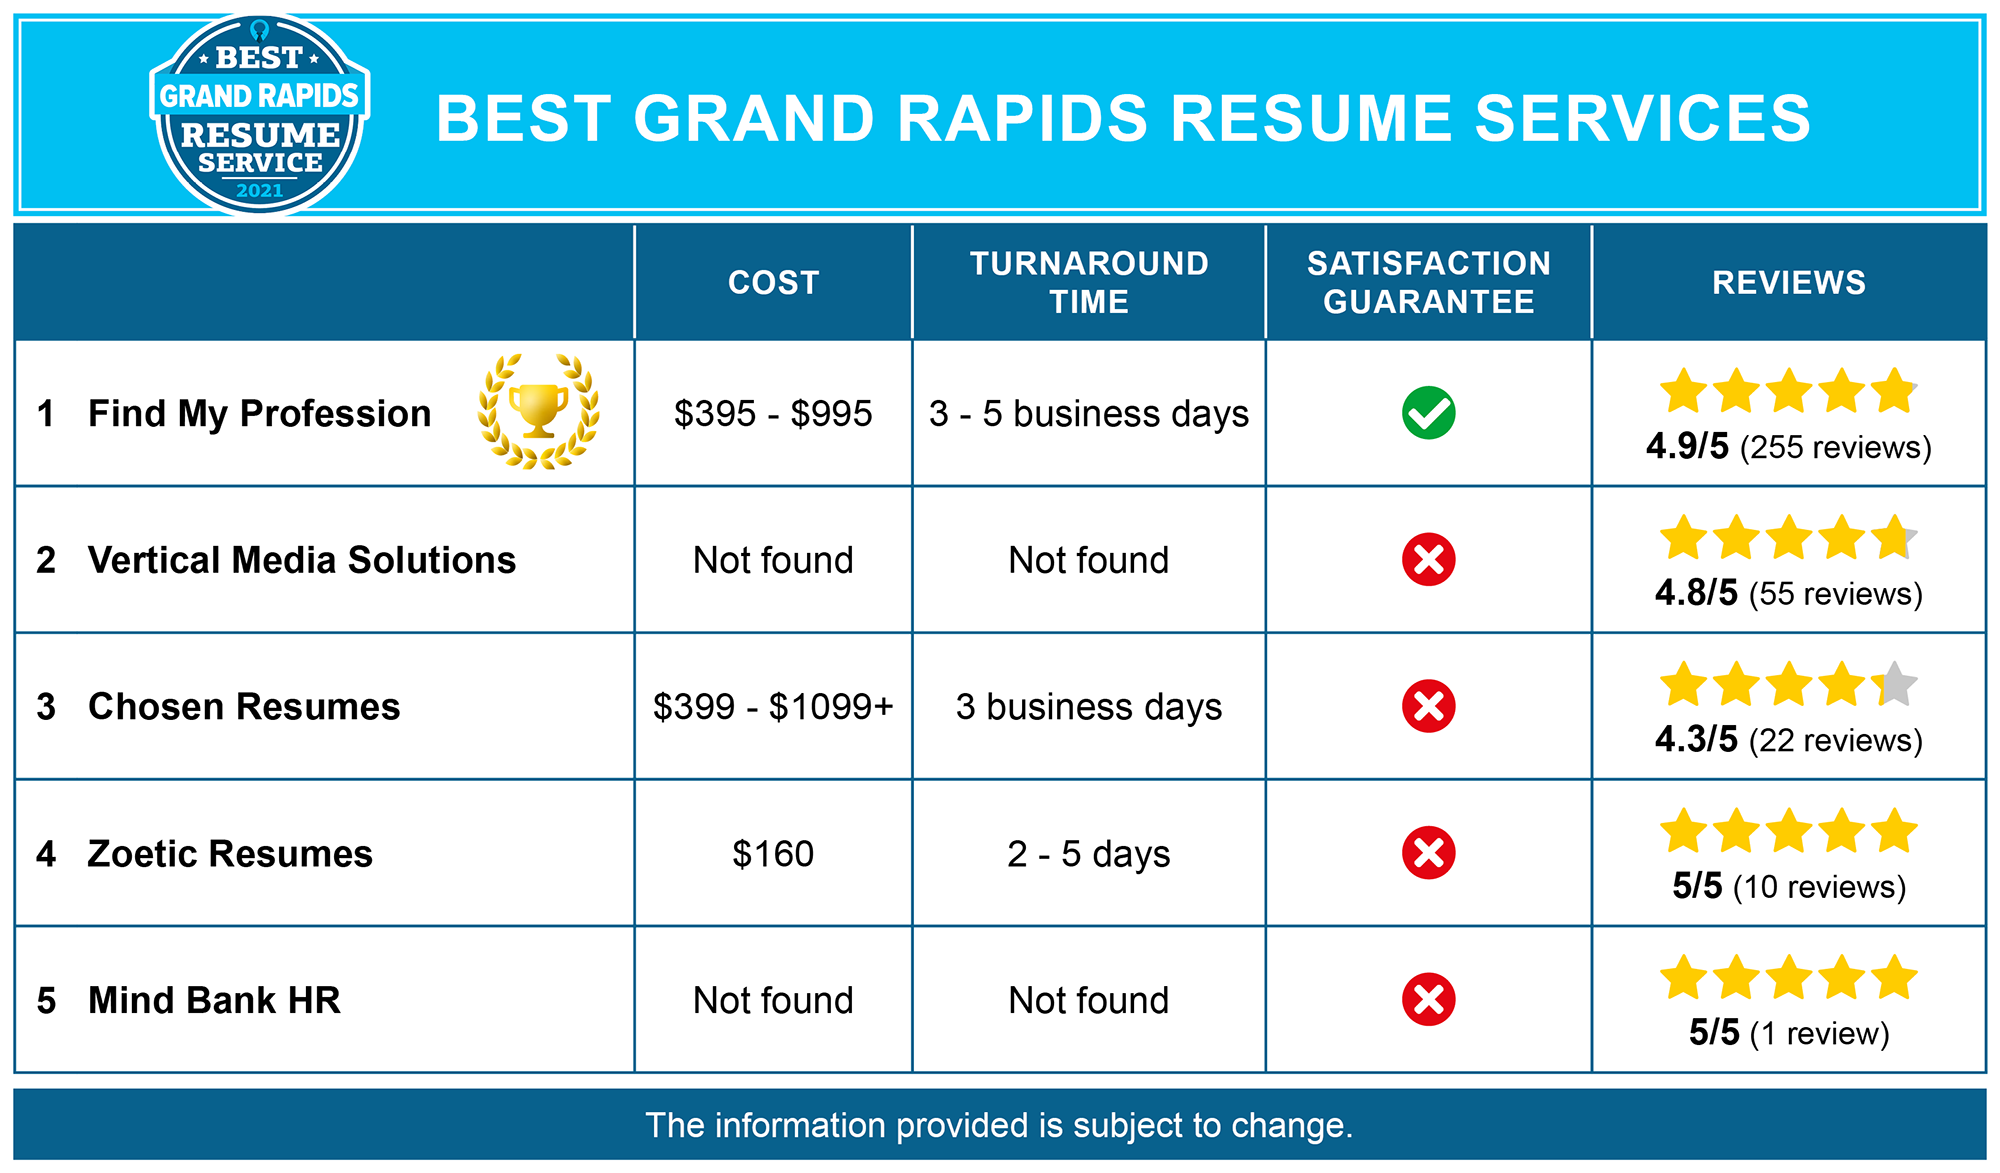 5 Best Resume Writing Services in Grand Rapids, MI